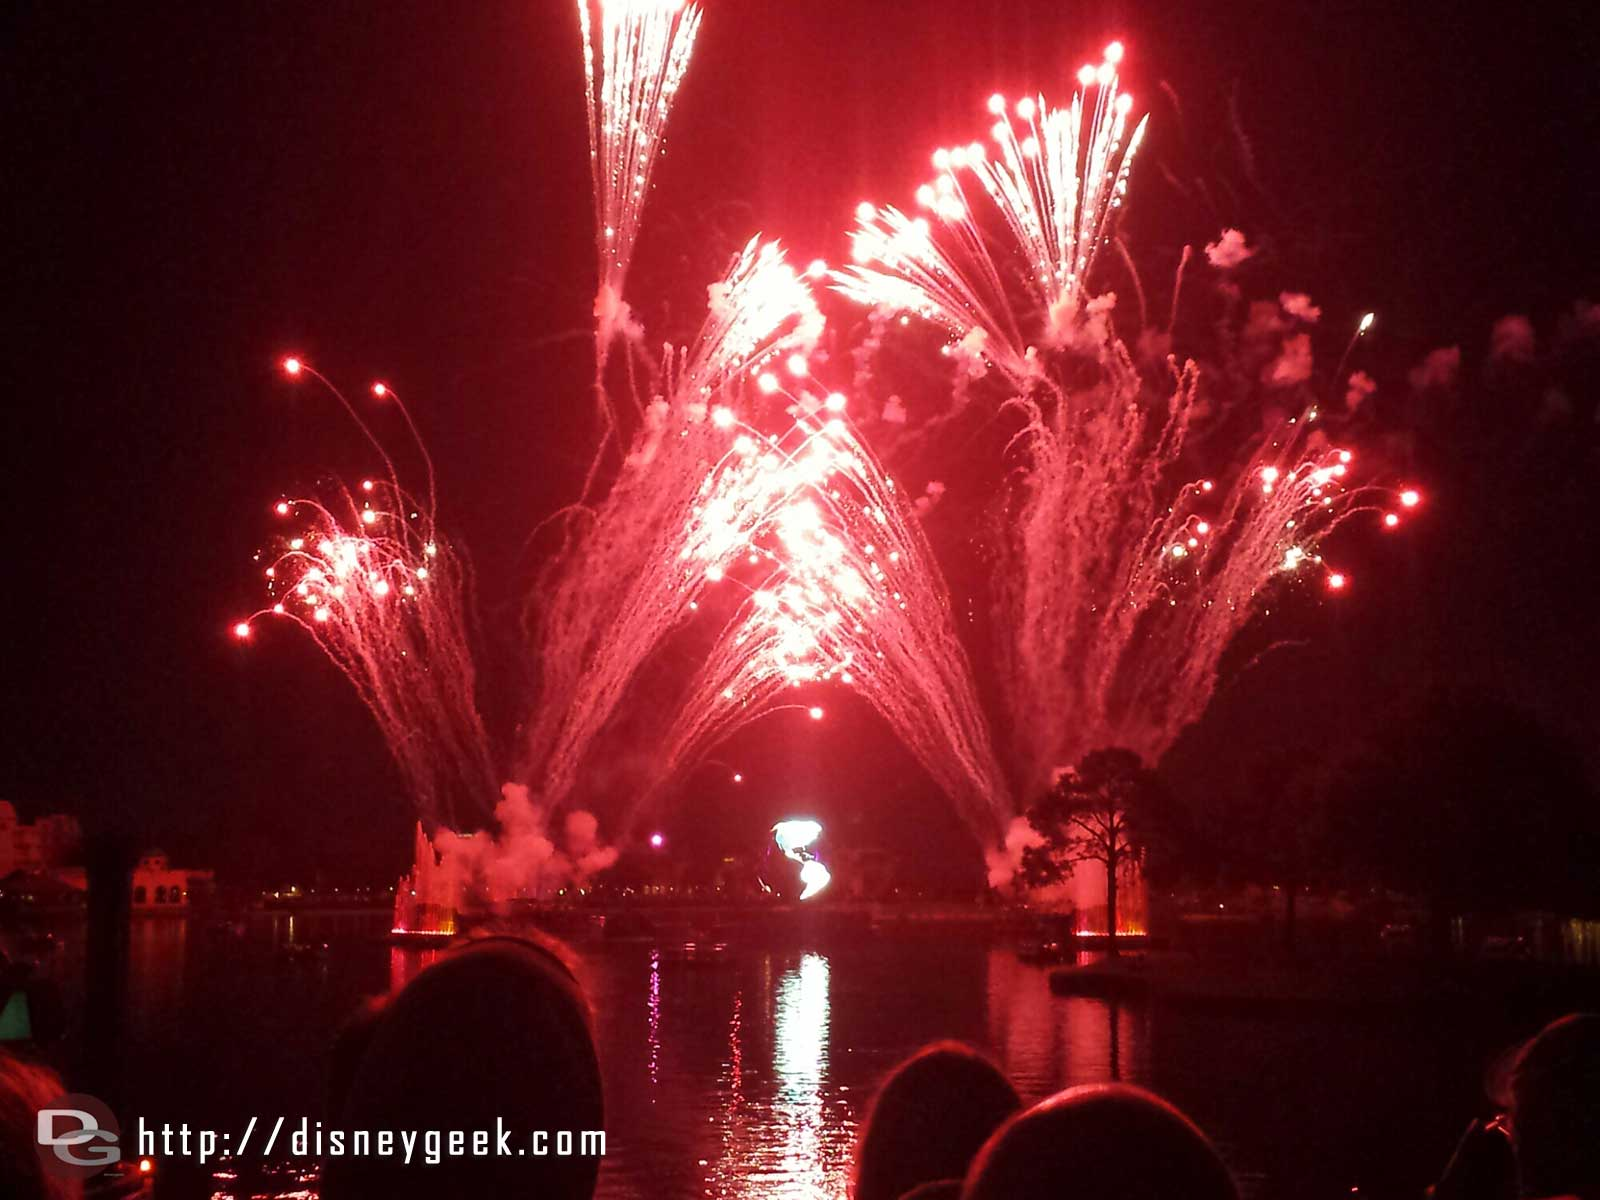 Closing out my day with Illuminations Reflections of Earth #Epcot #WDW